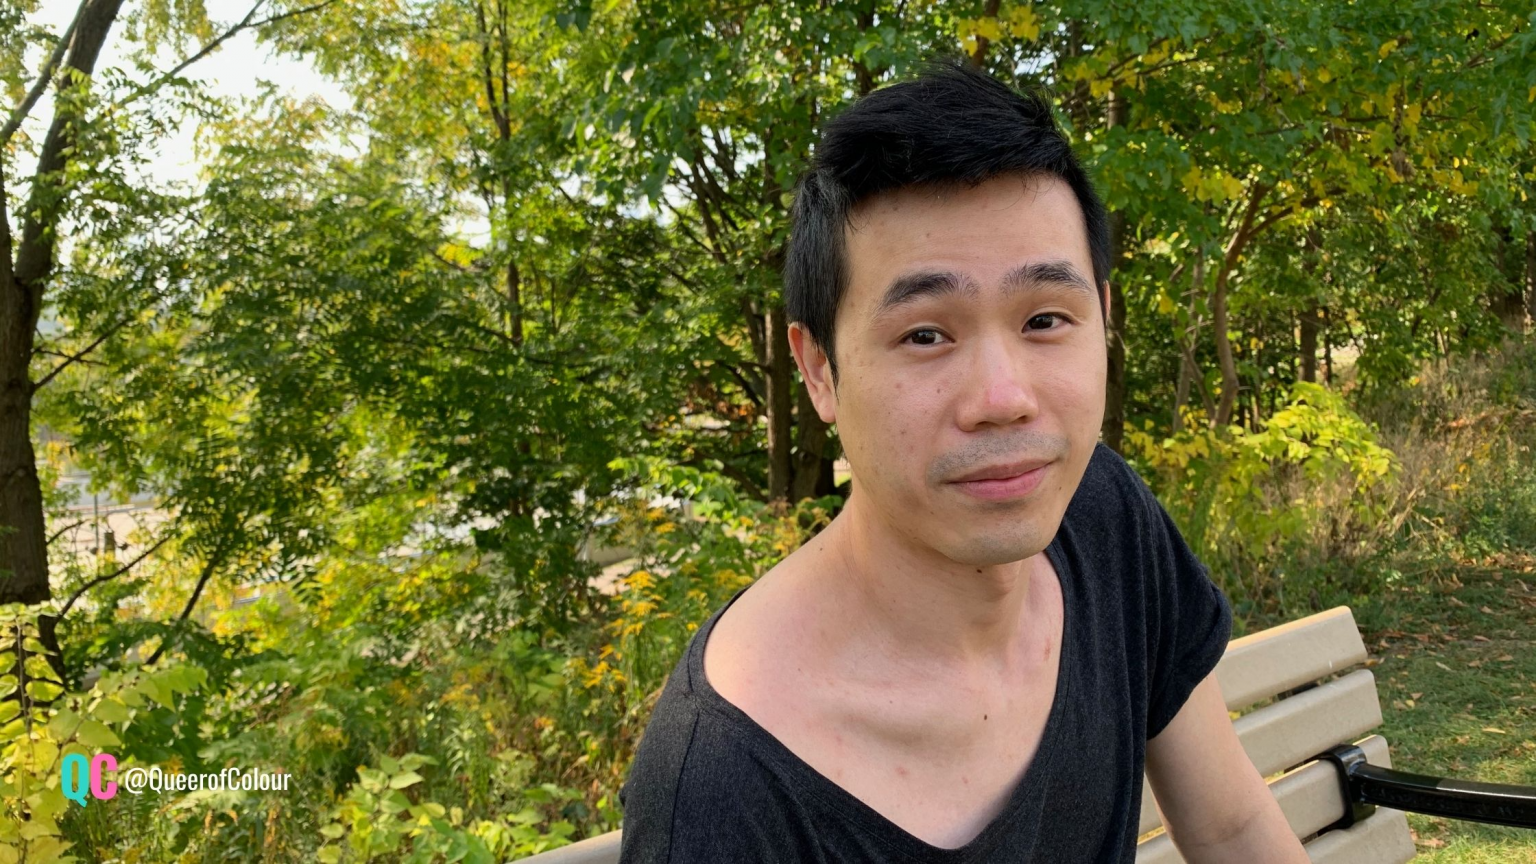 Jeff Ho sitting on a bench in a park